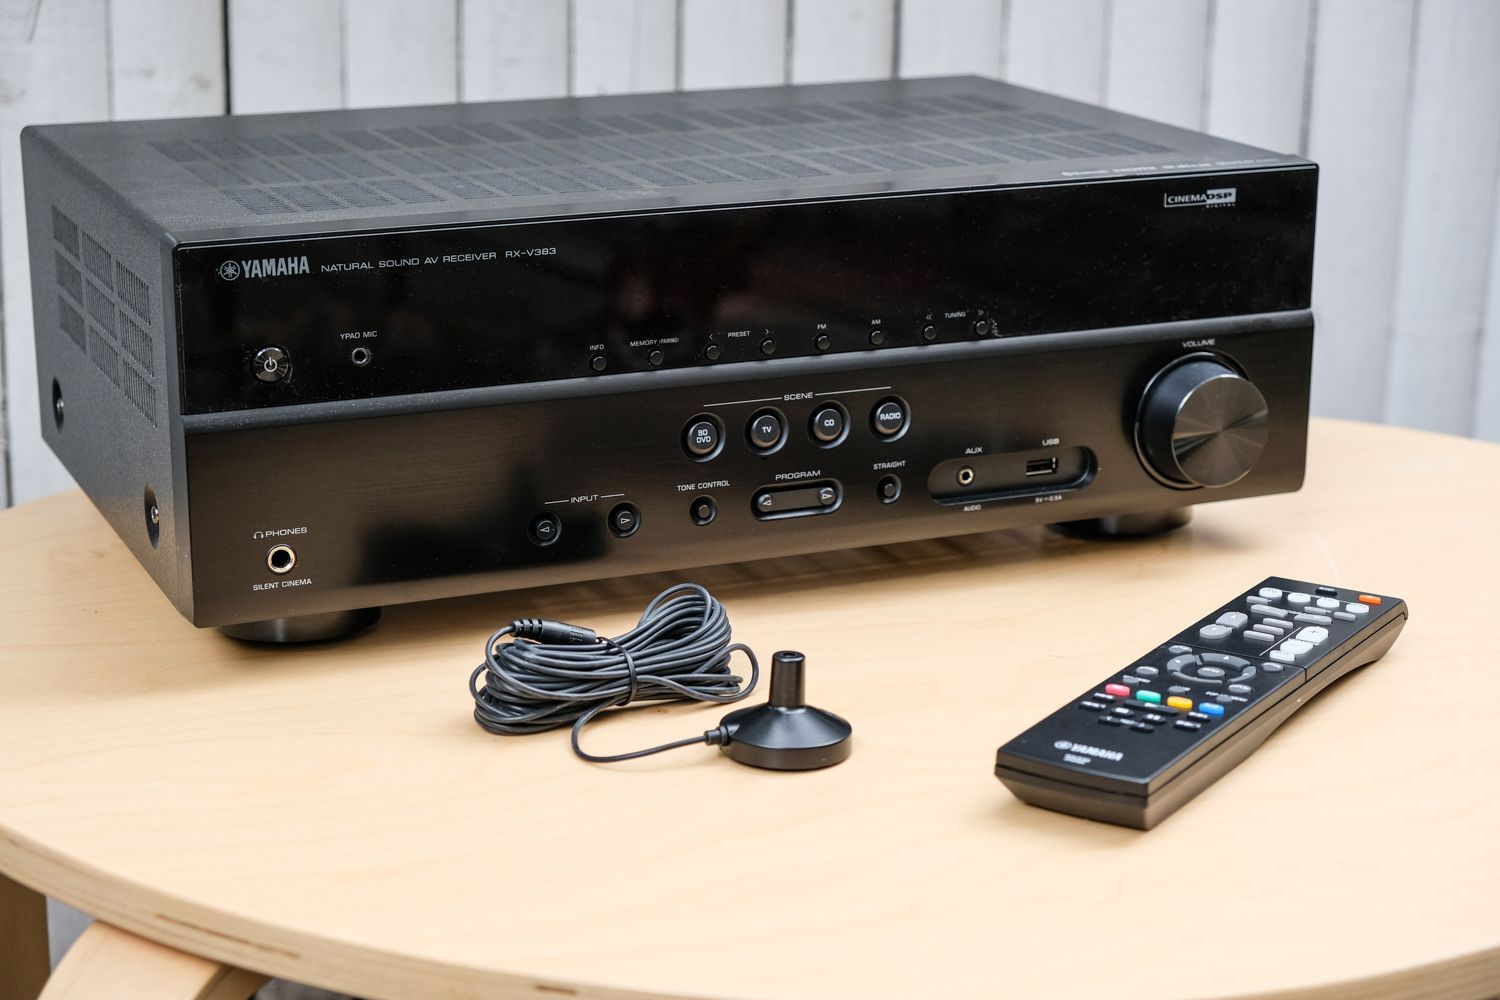 The 10 Best Under-$400 Home Theater Receivers of 2019